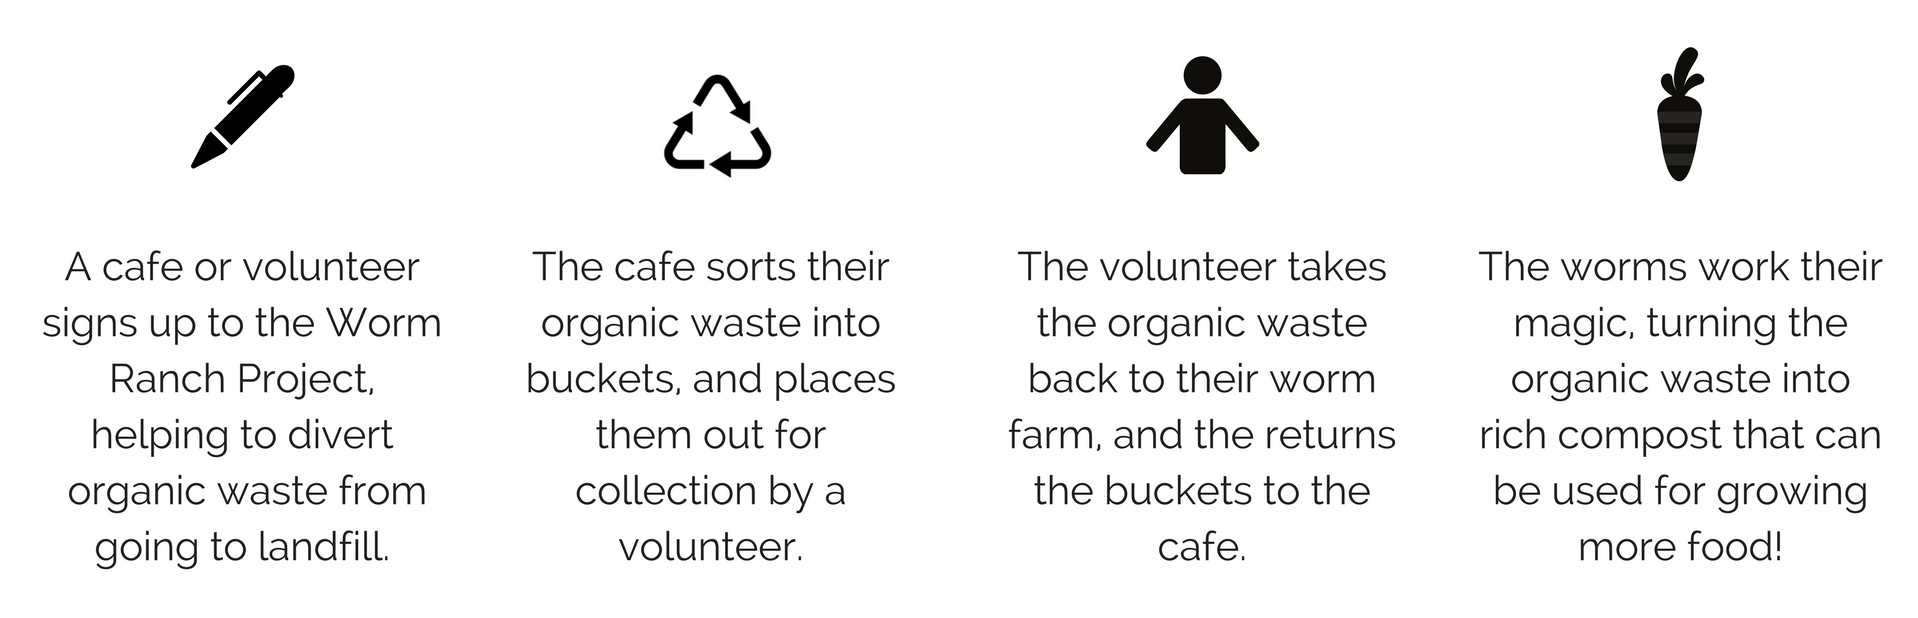 A cafe or volunteer signs up to the Worm Ranch Project, helping to reduce the amount of organic waste going to landfill. (1).png